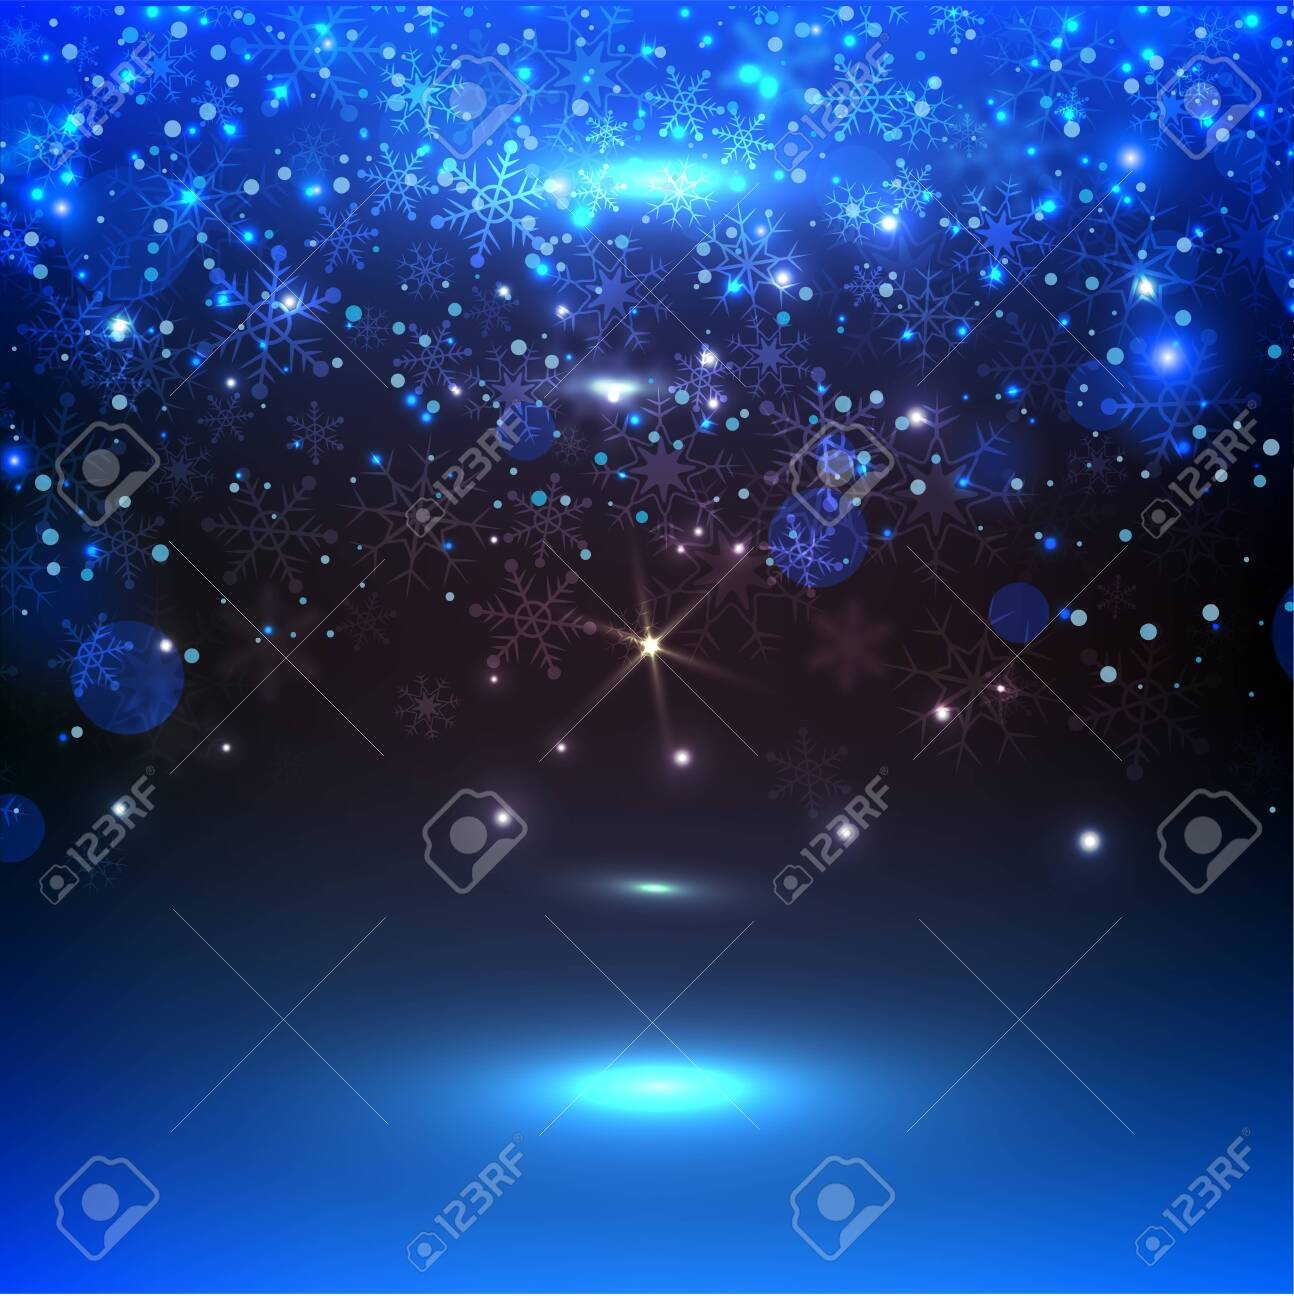 blue background with snowflakes, vector illustration. Christmas background with magic light - 139407109